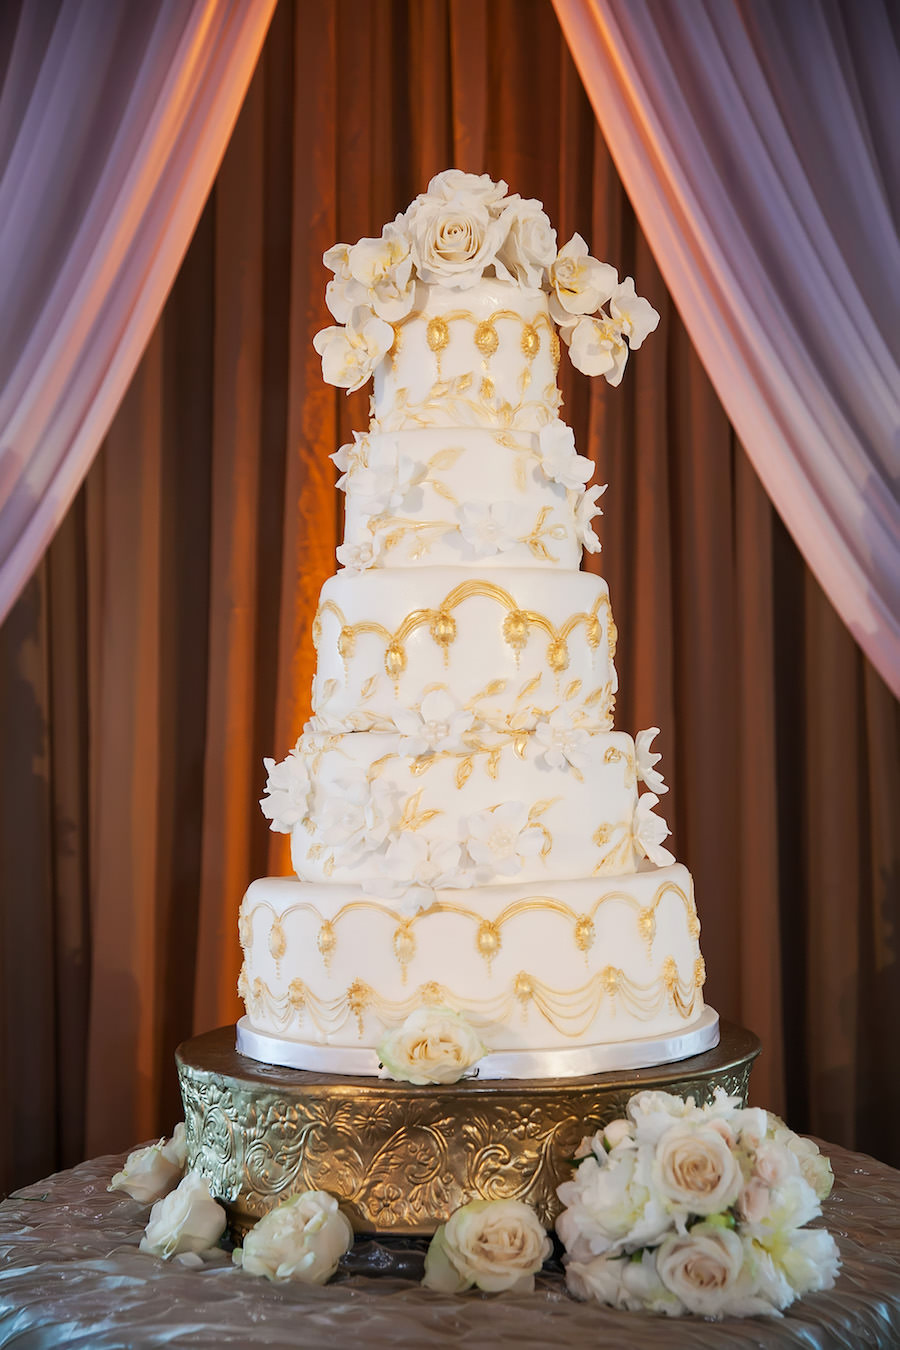 Five Tier Round Ivory and Gold Wedding Cake with Ivory Roses on Brass Cake Stand and Specialty Linen   St. Petersburg Wedding Linen Rentals by Over The Top Linens   St. Pete Wedding Photographer Limelight Photography